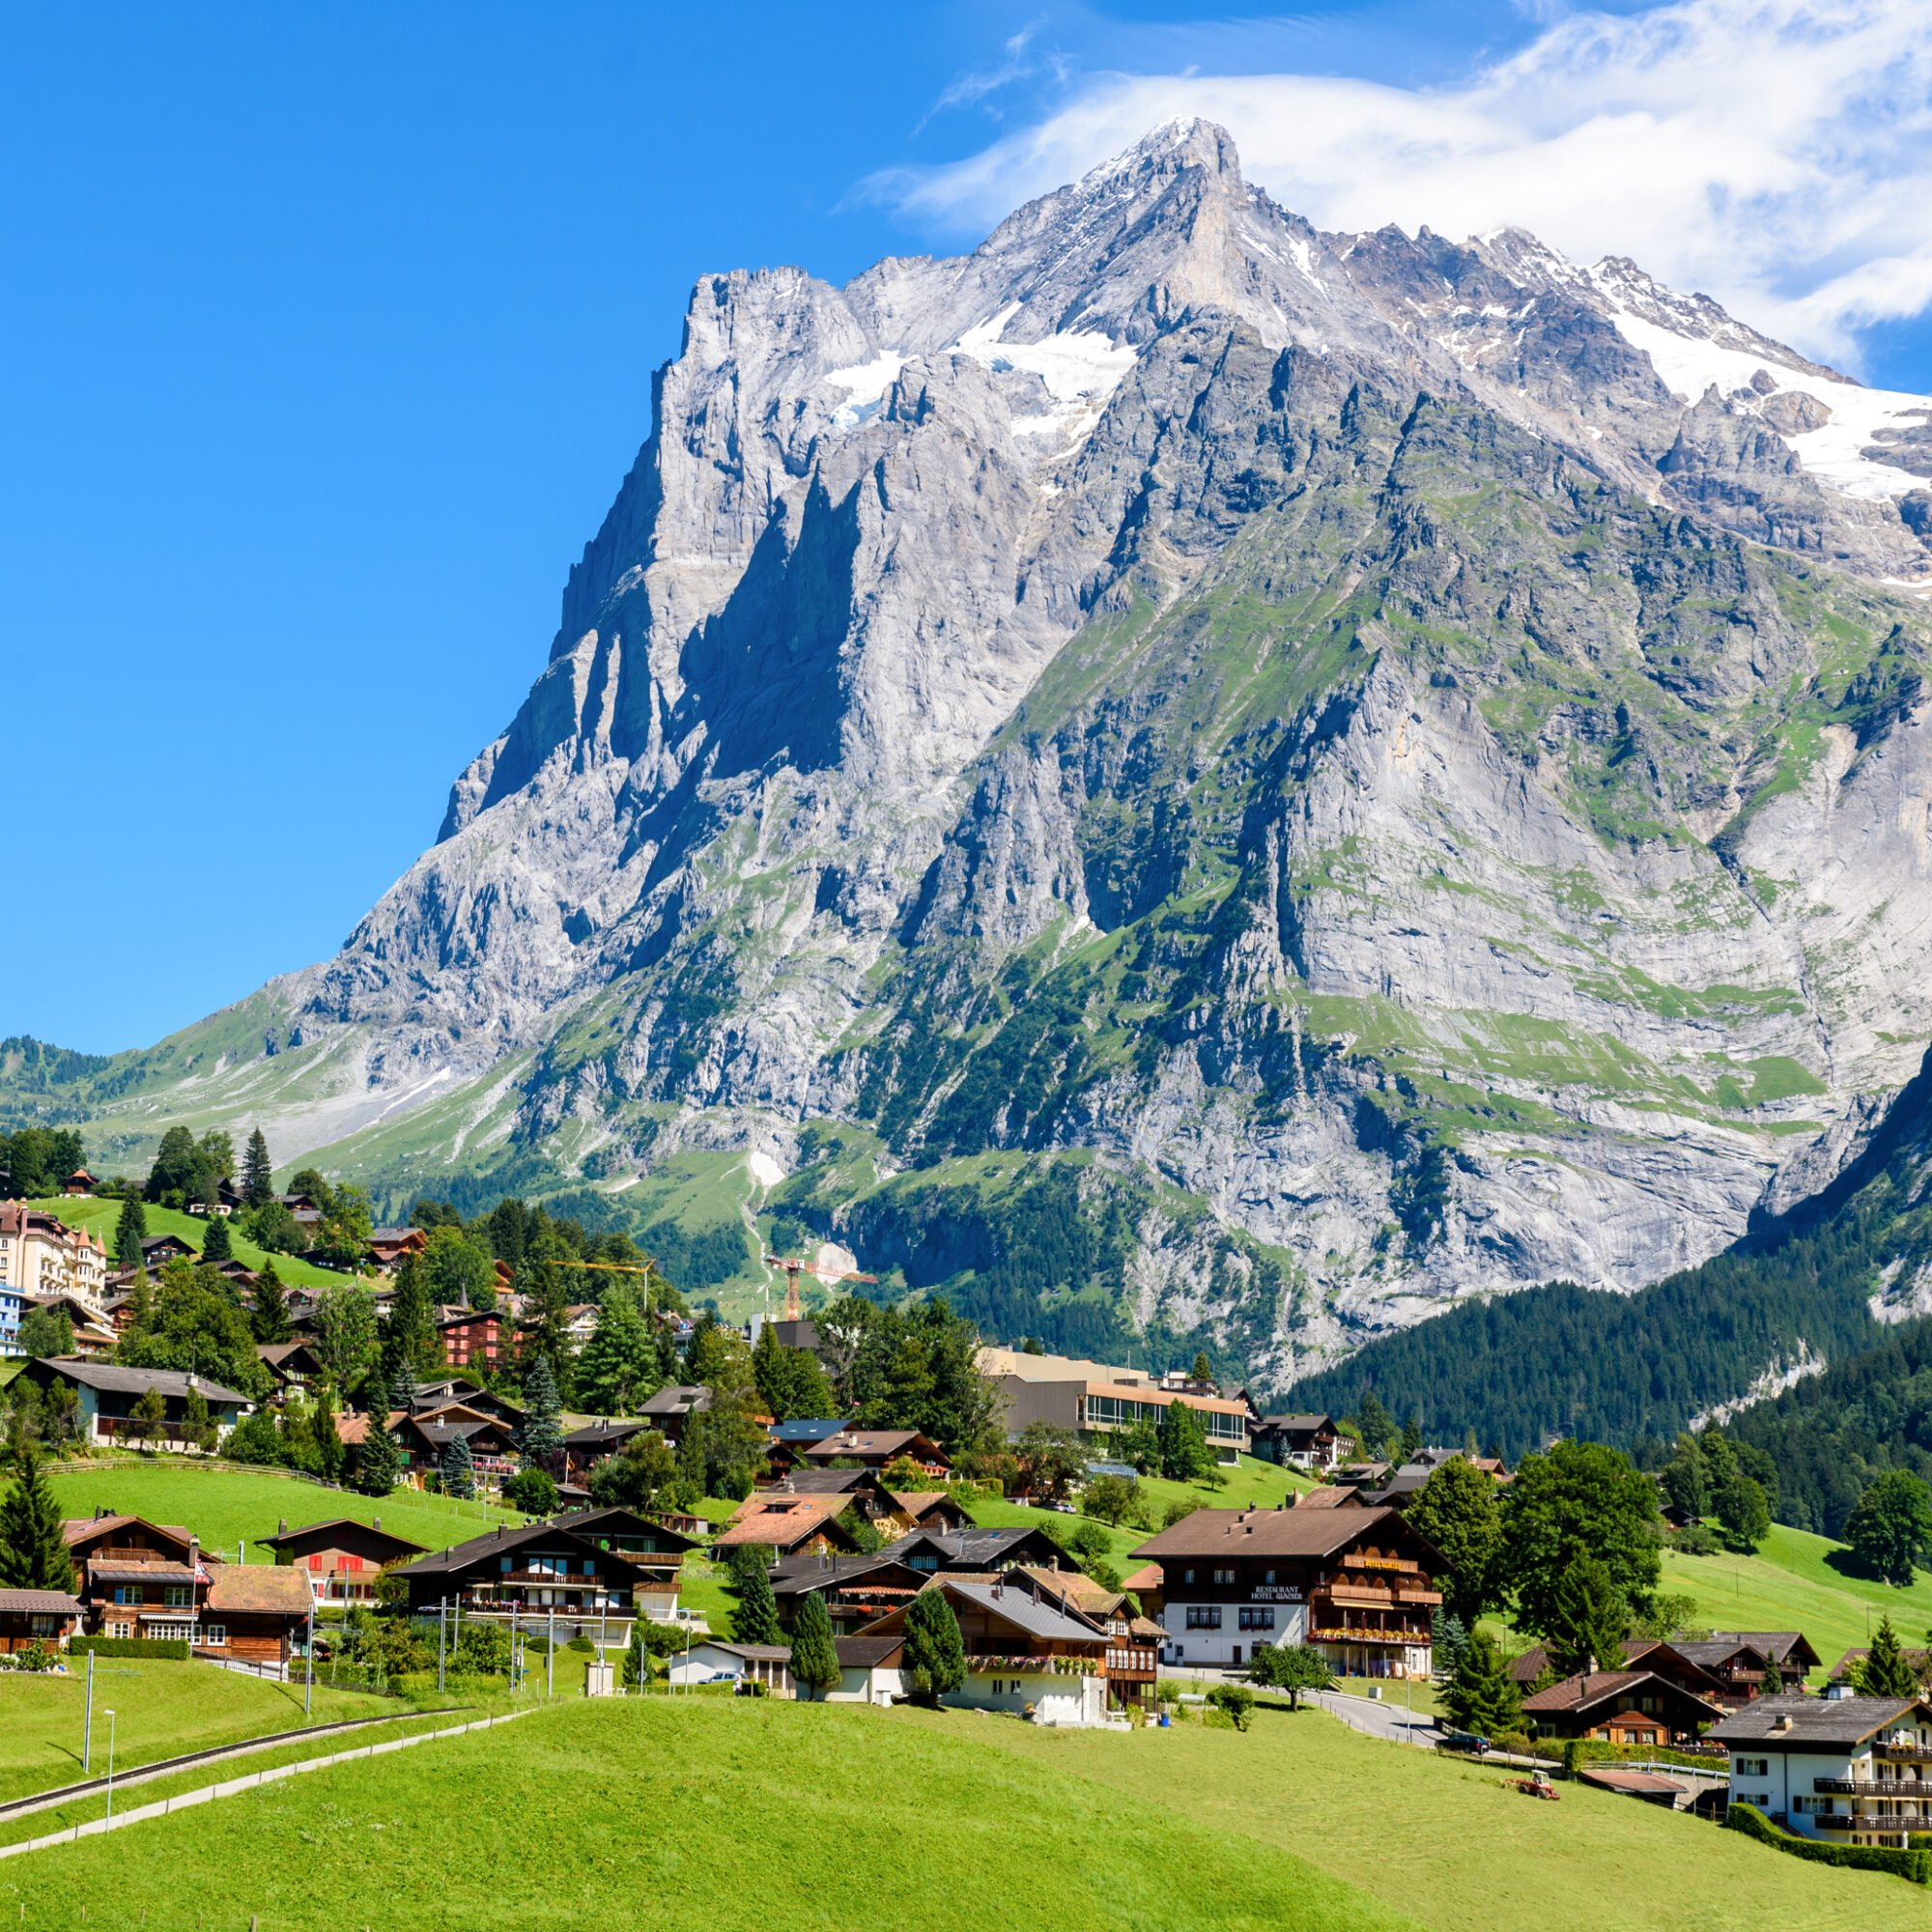 The beautiful town of Grindelwald, Switzerland.